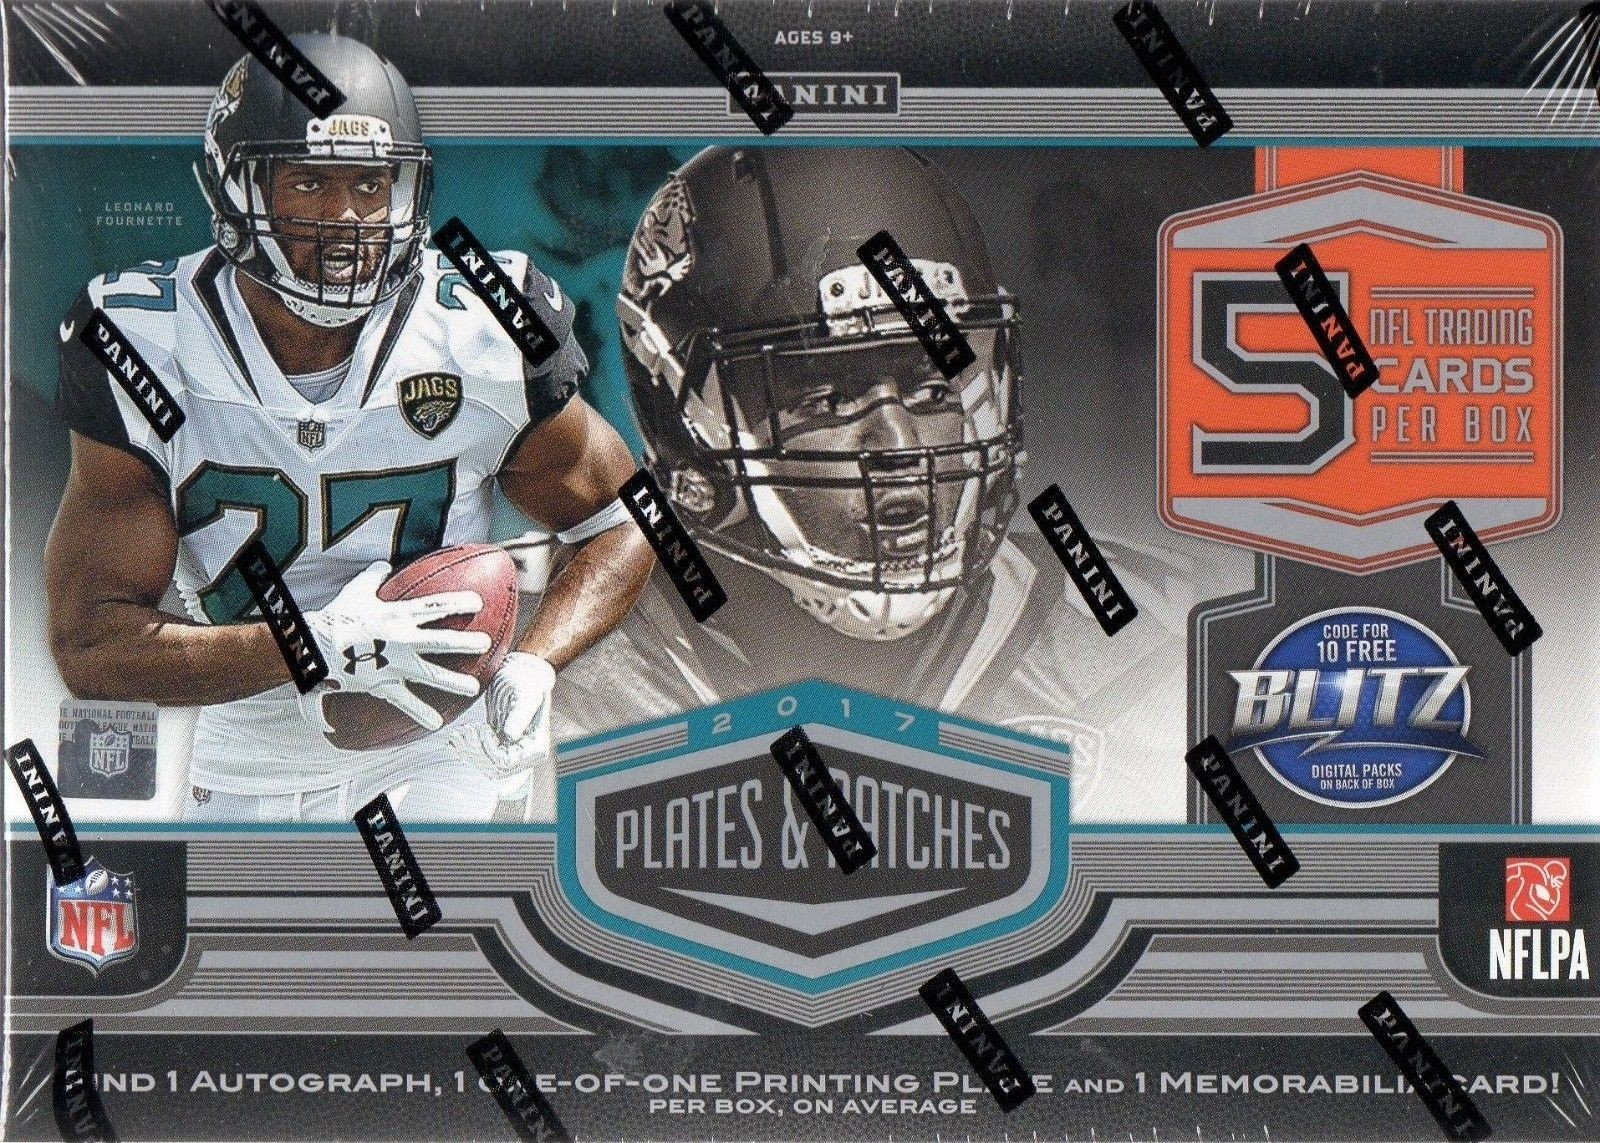 2017 Panini Plates & Patches Football Hobby 12 Box Case